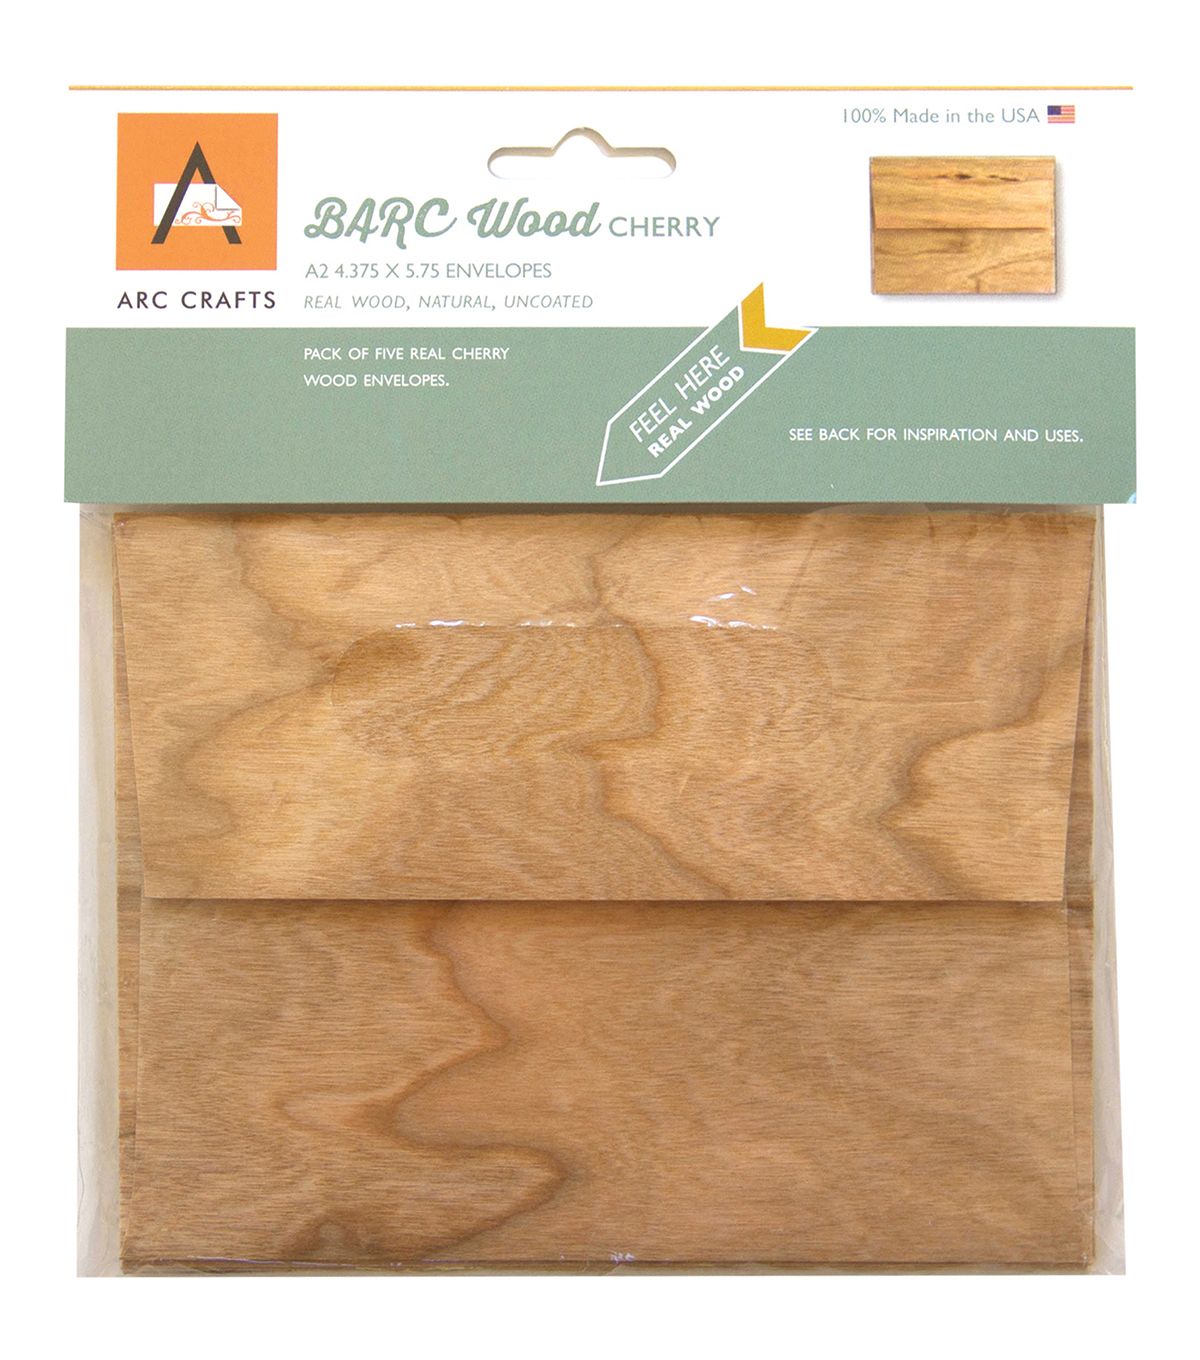 Arc Crafts BARC Wood Veneer 5ct A2 Envelopes-Cherry